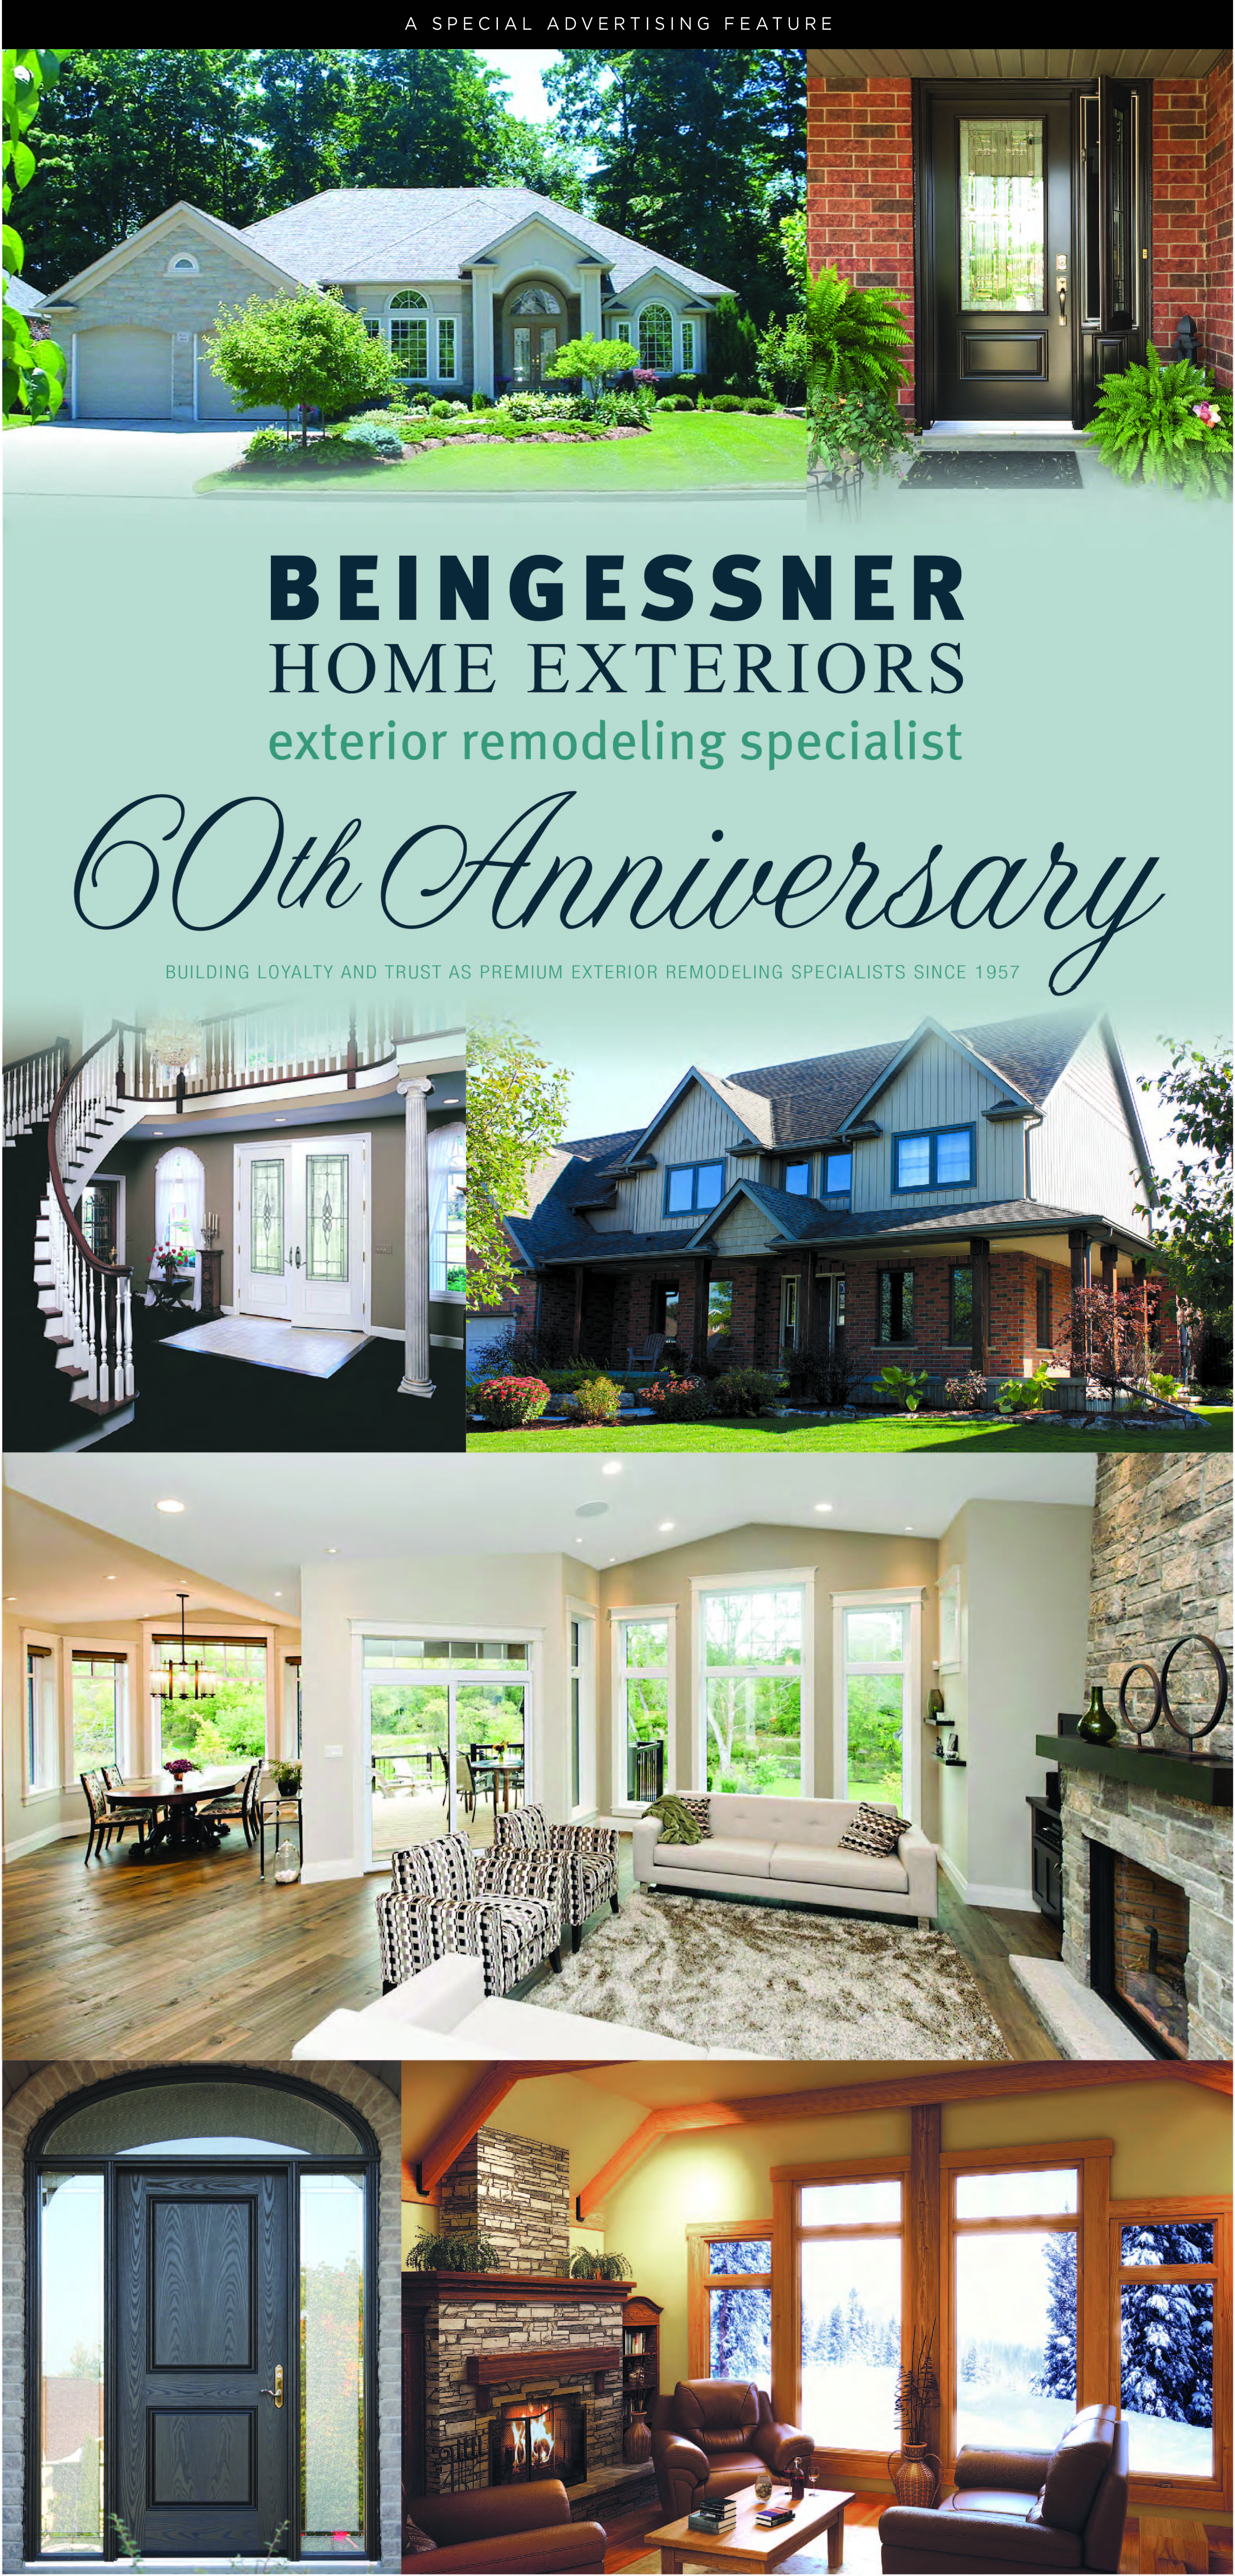 KW Record 60th Anniversary Article... THANK YOU! | Beingessner Home ...